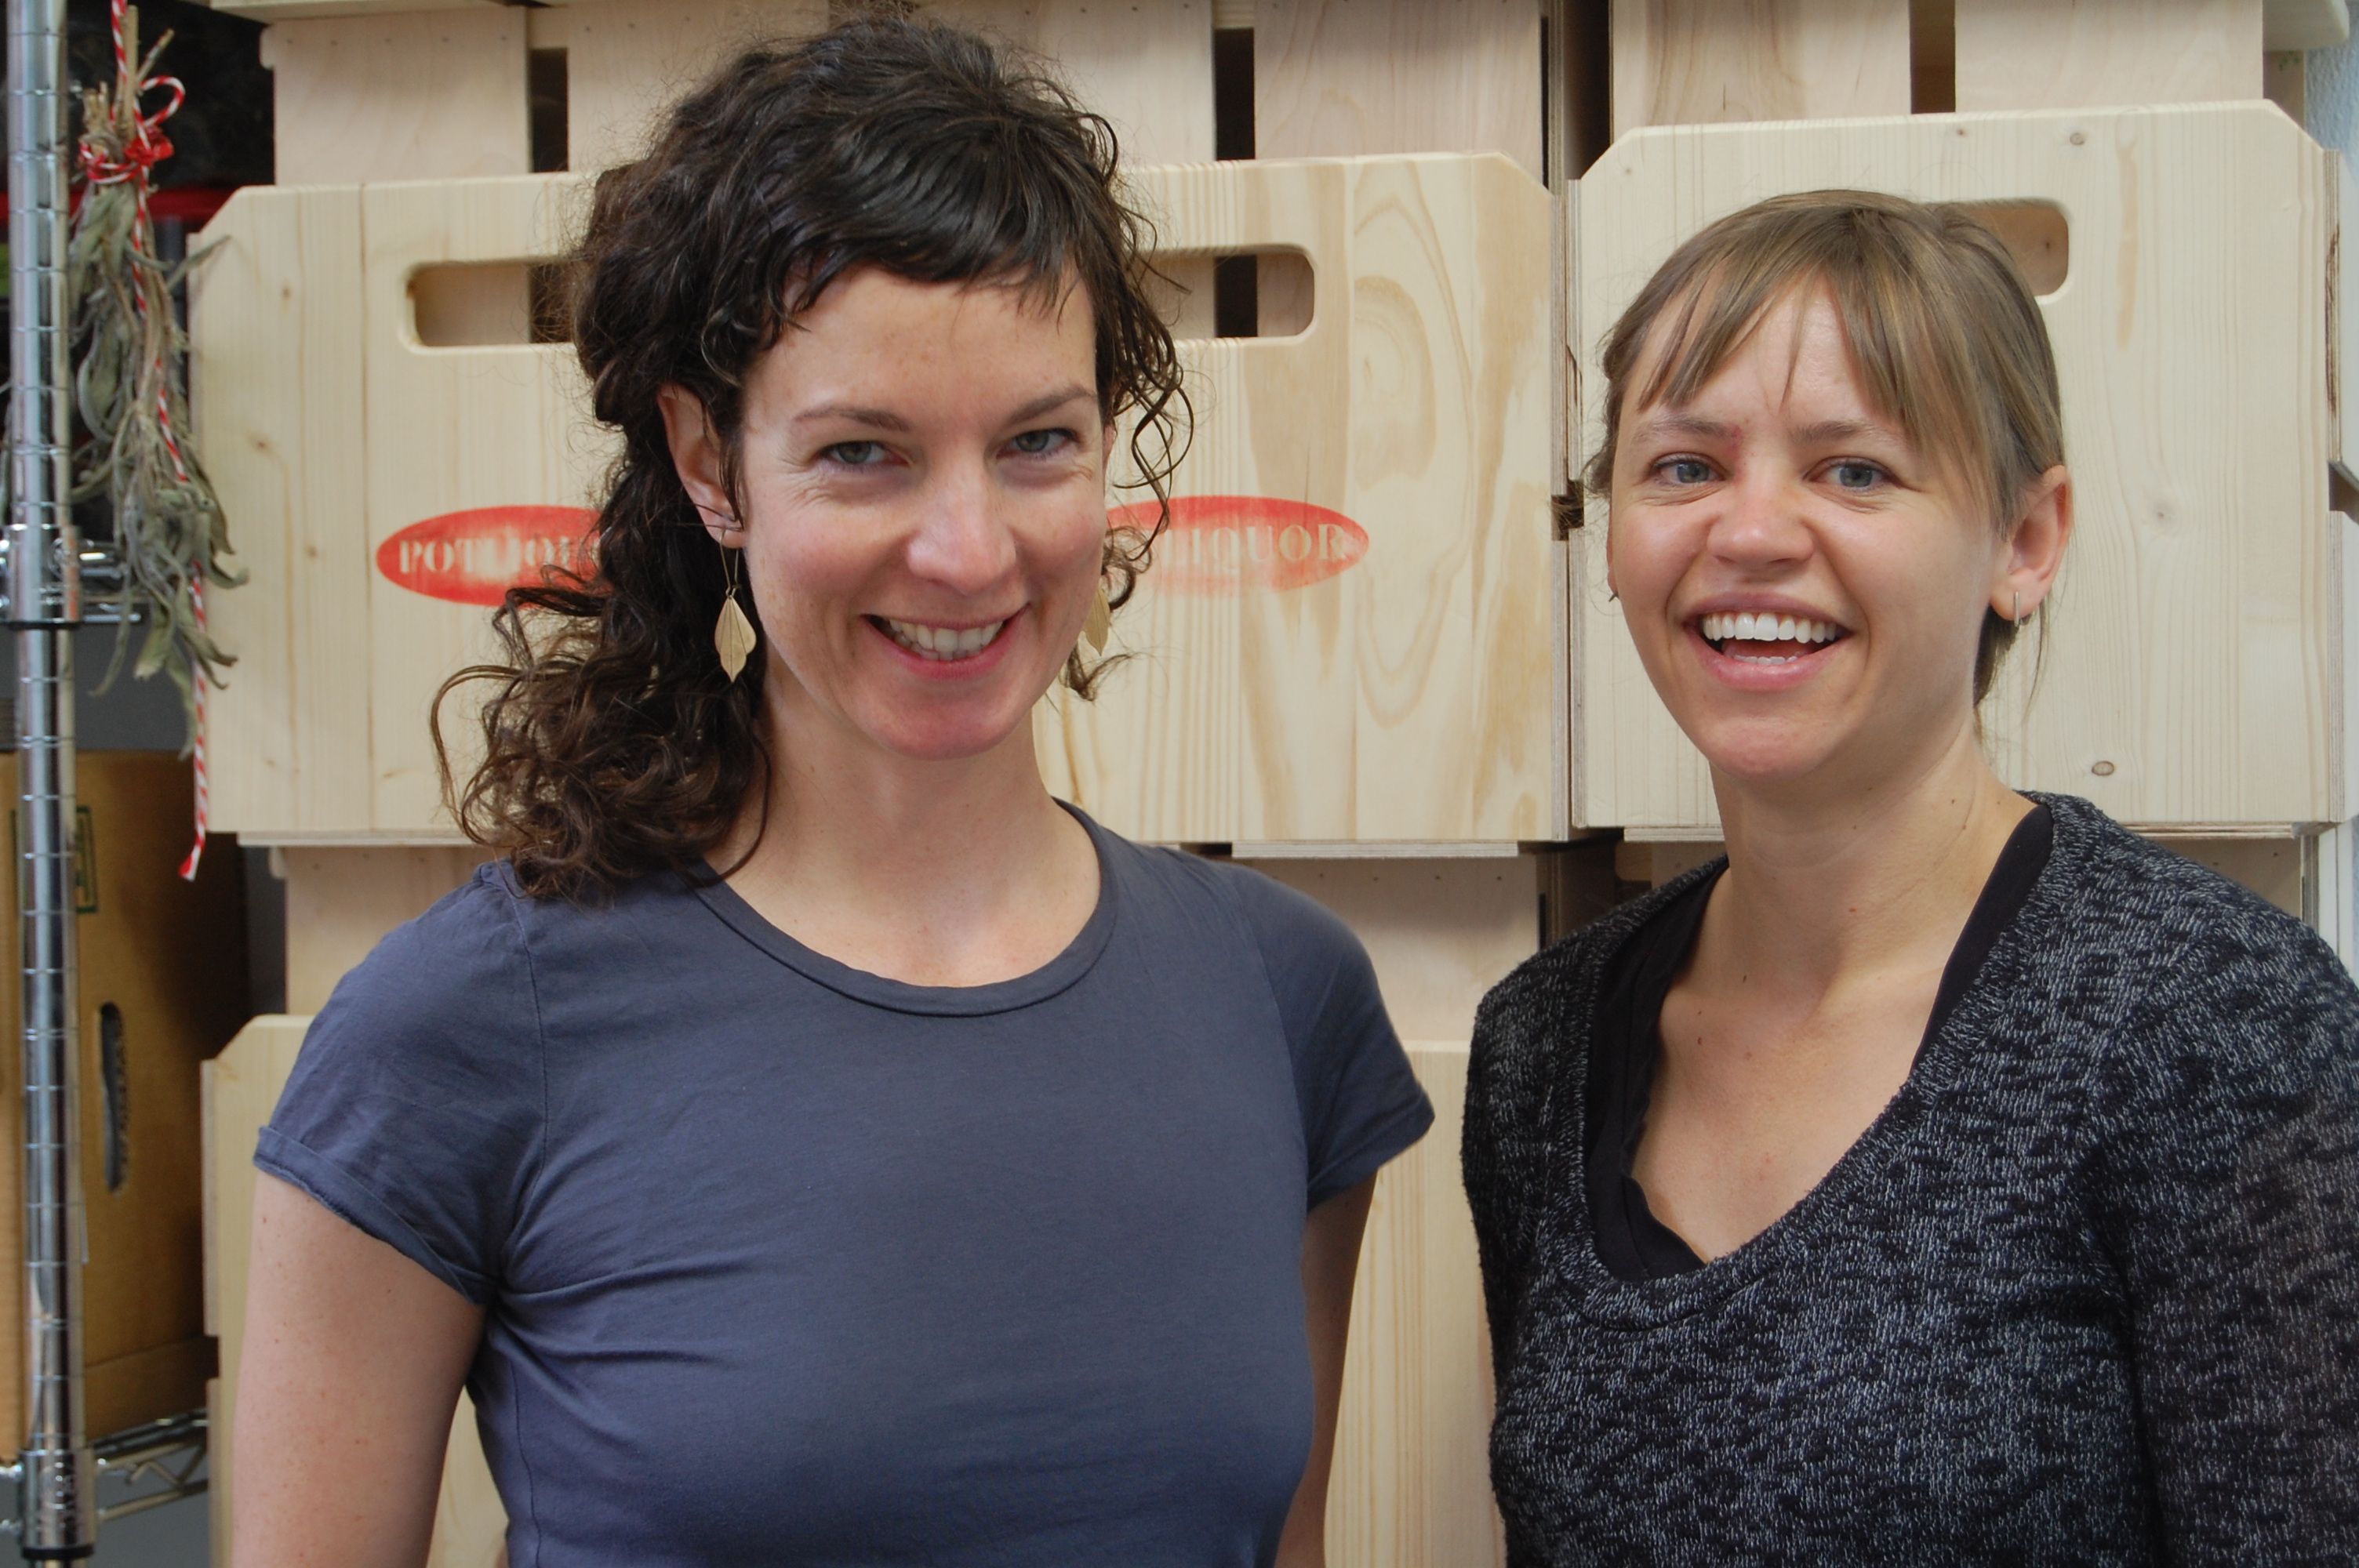 Jennifer Lynch and Laura McGrath, founders of Potliquor.